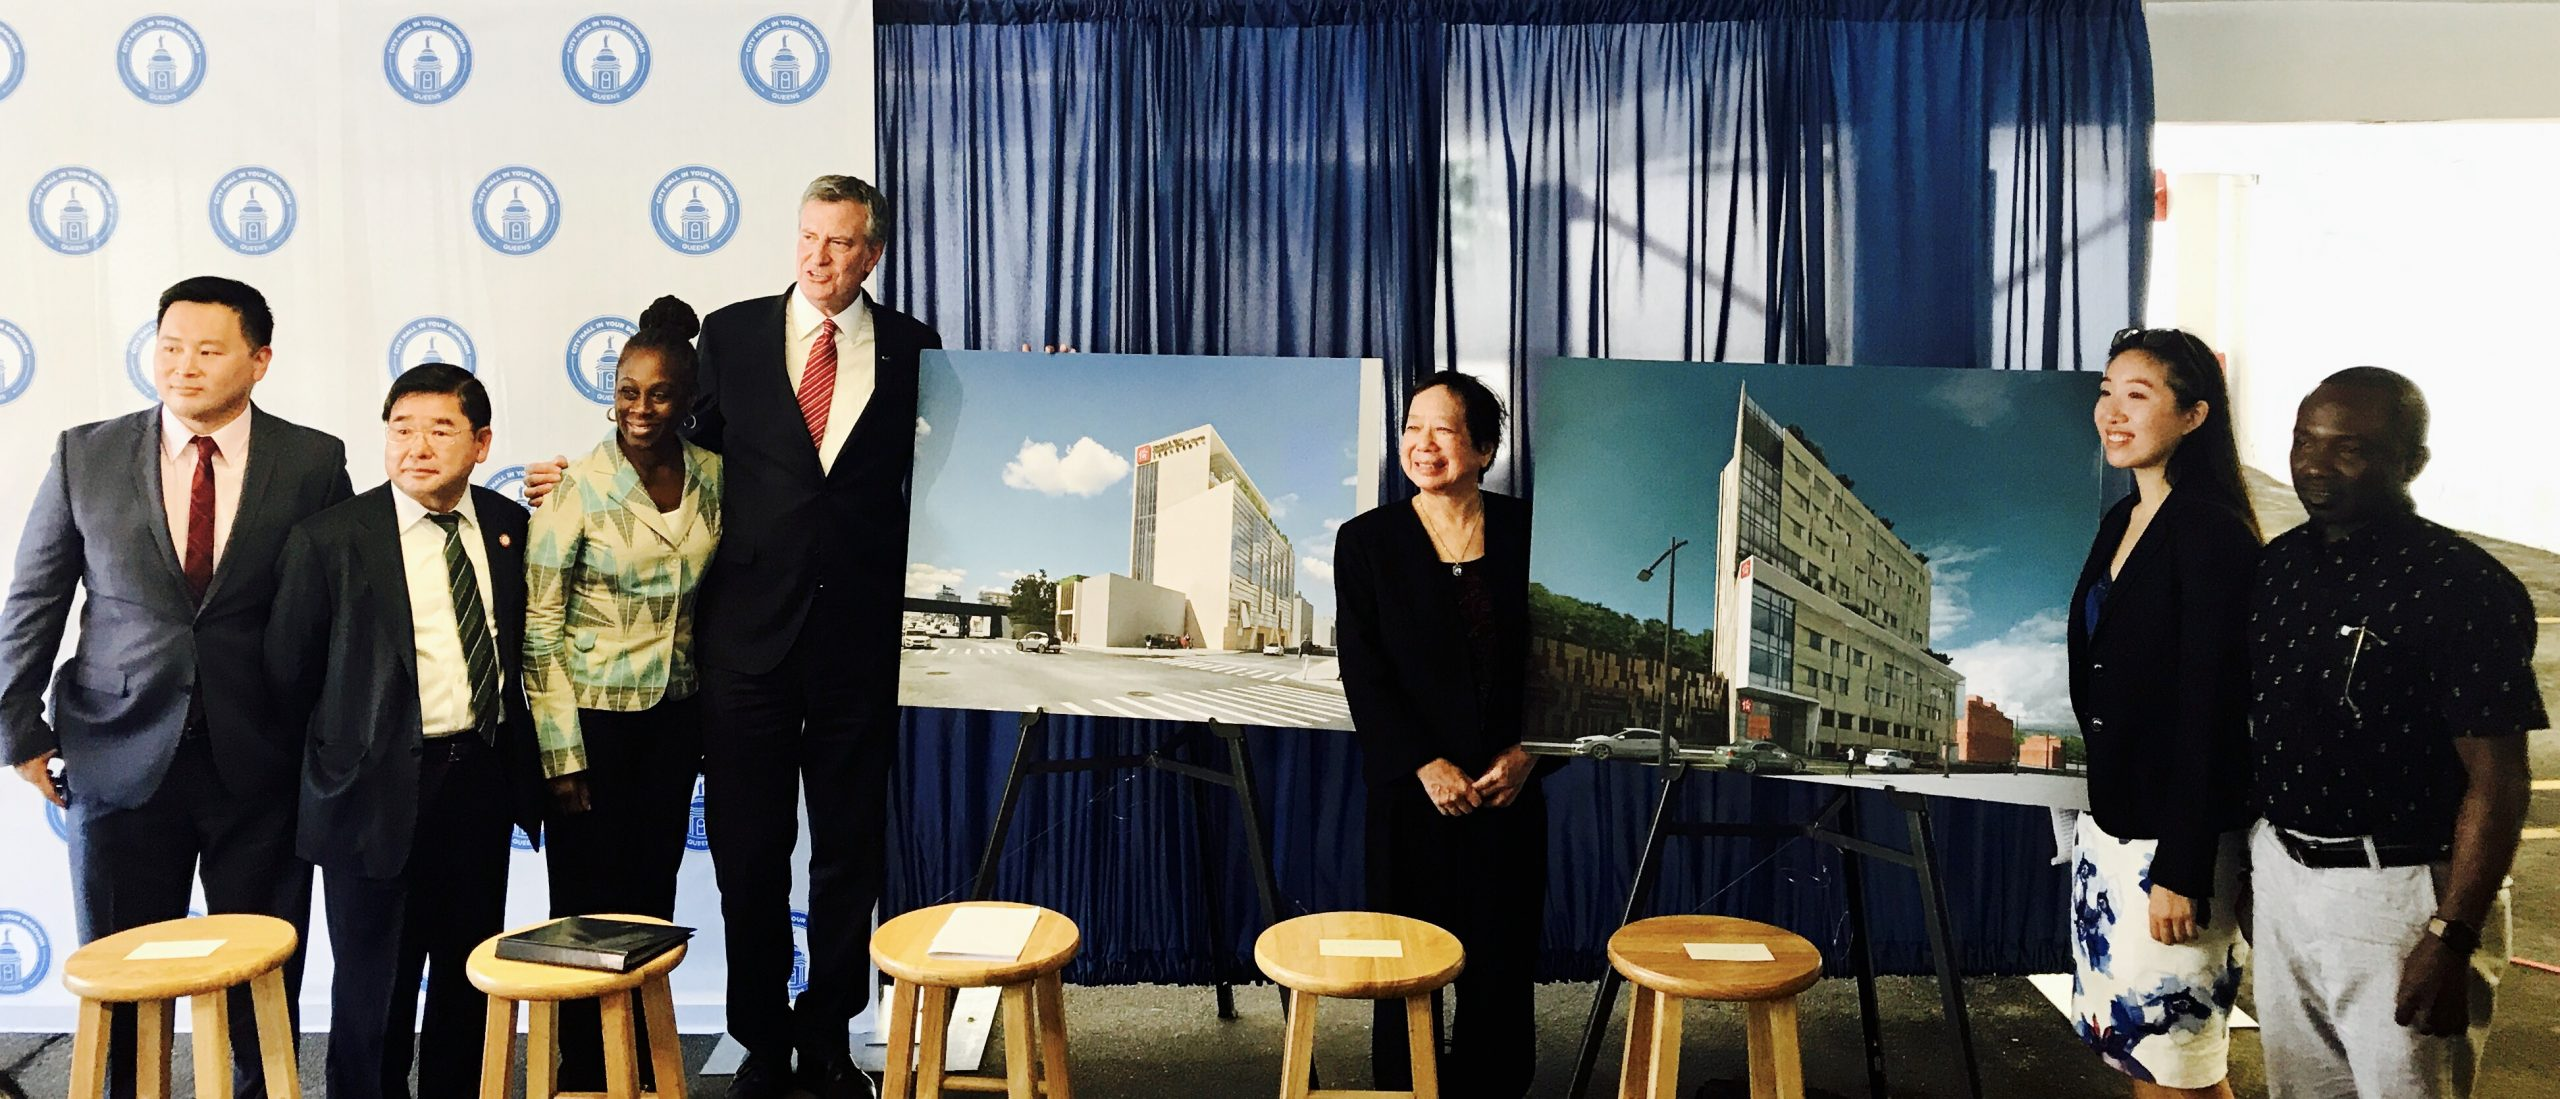 MAYOR DE BLASIO ANNOUNCES PLANS FOR A $65 MILLION COMMUNITY HEALTH CENTER IN FLUSHING